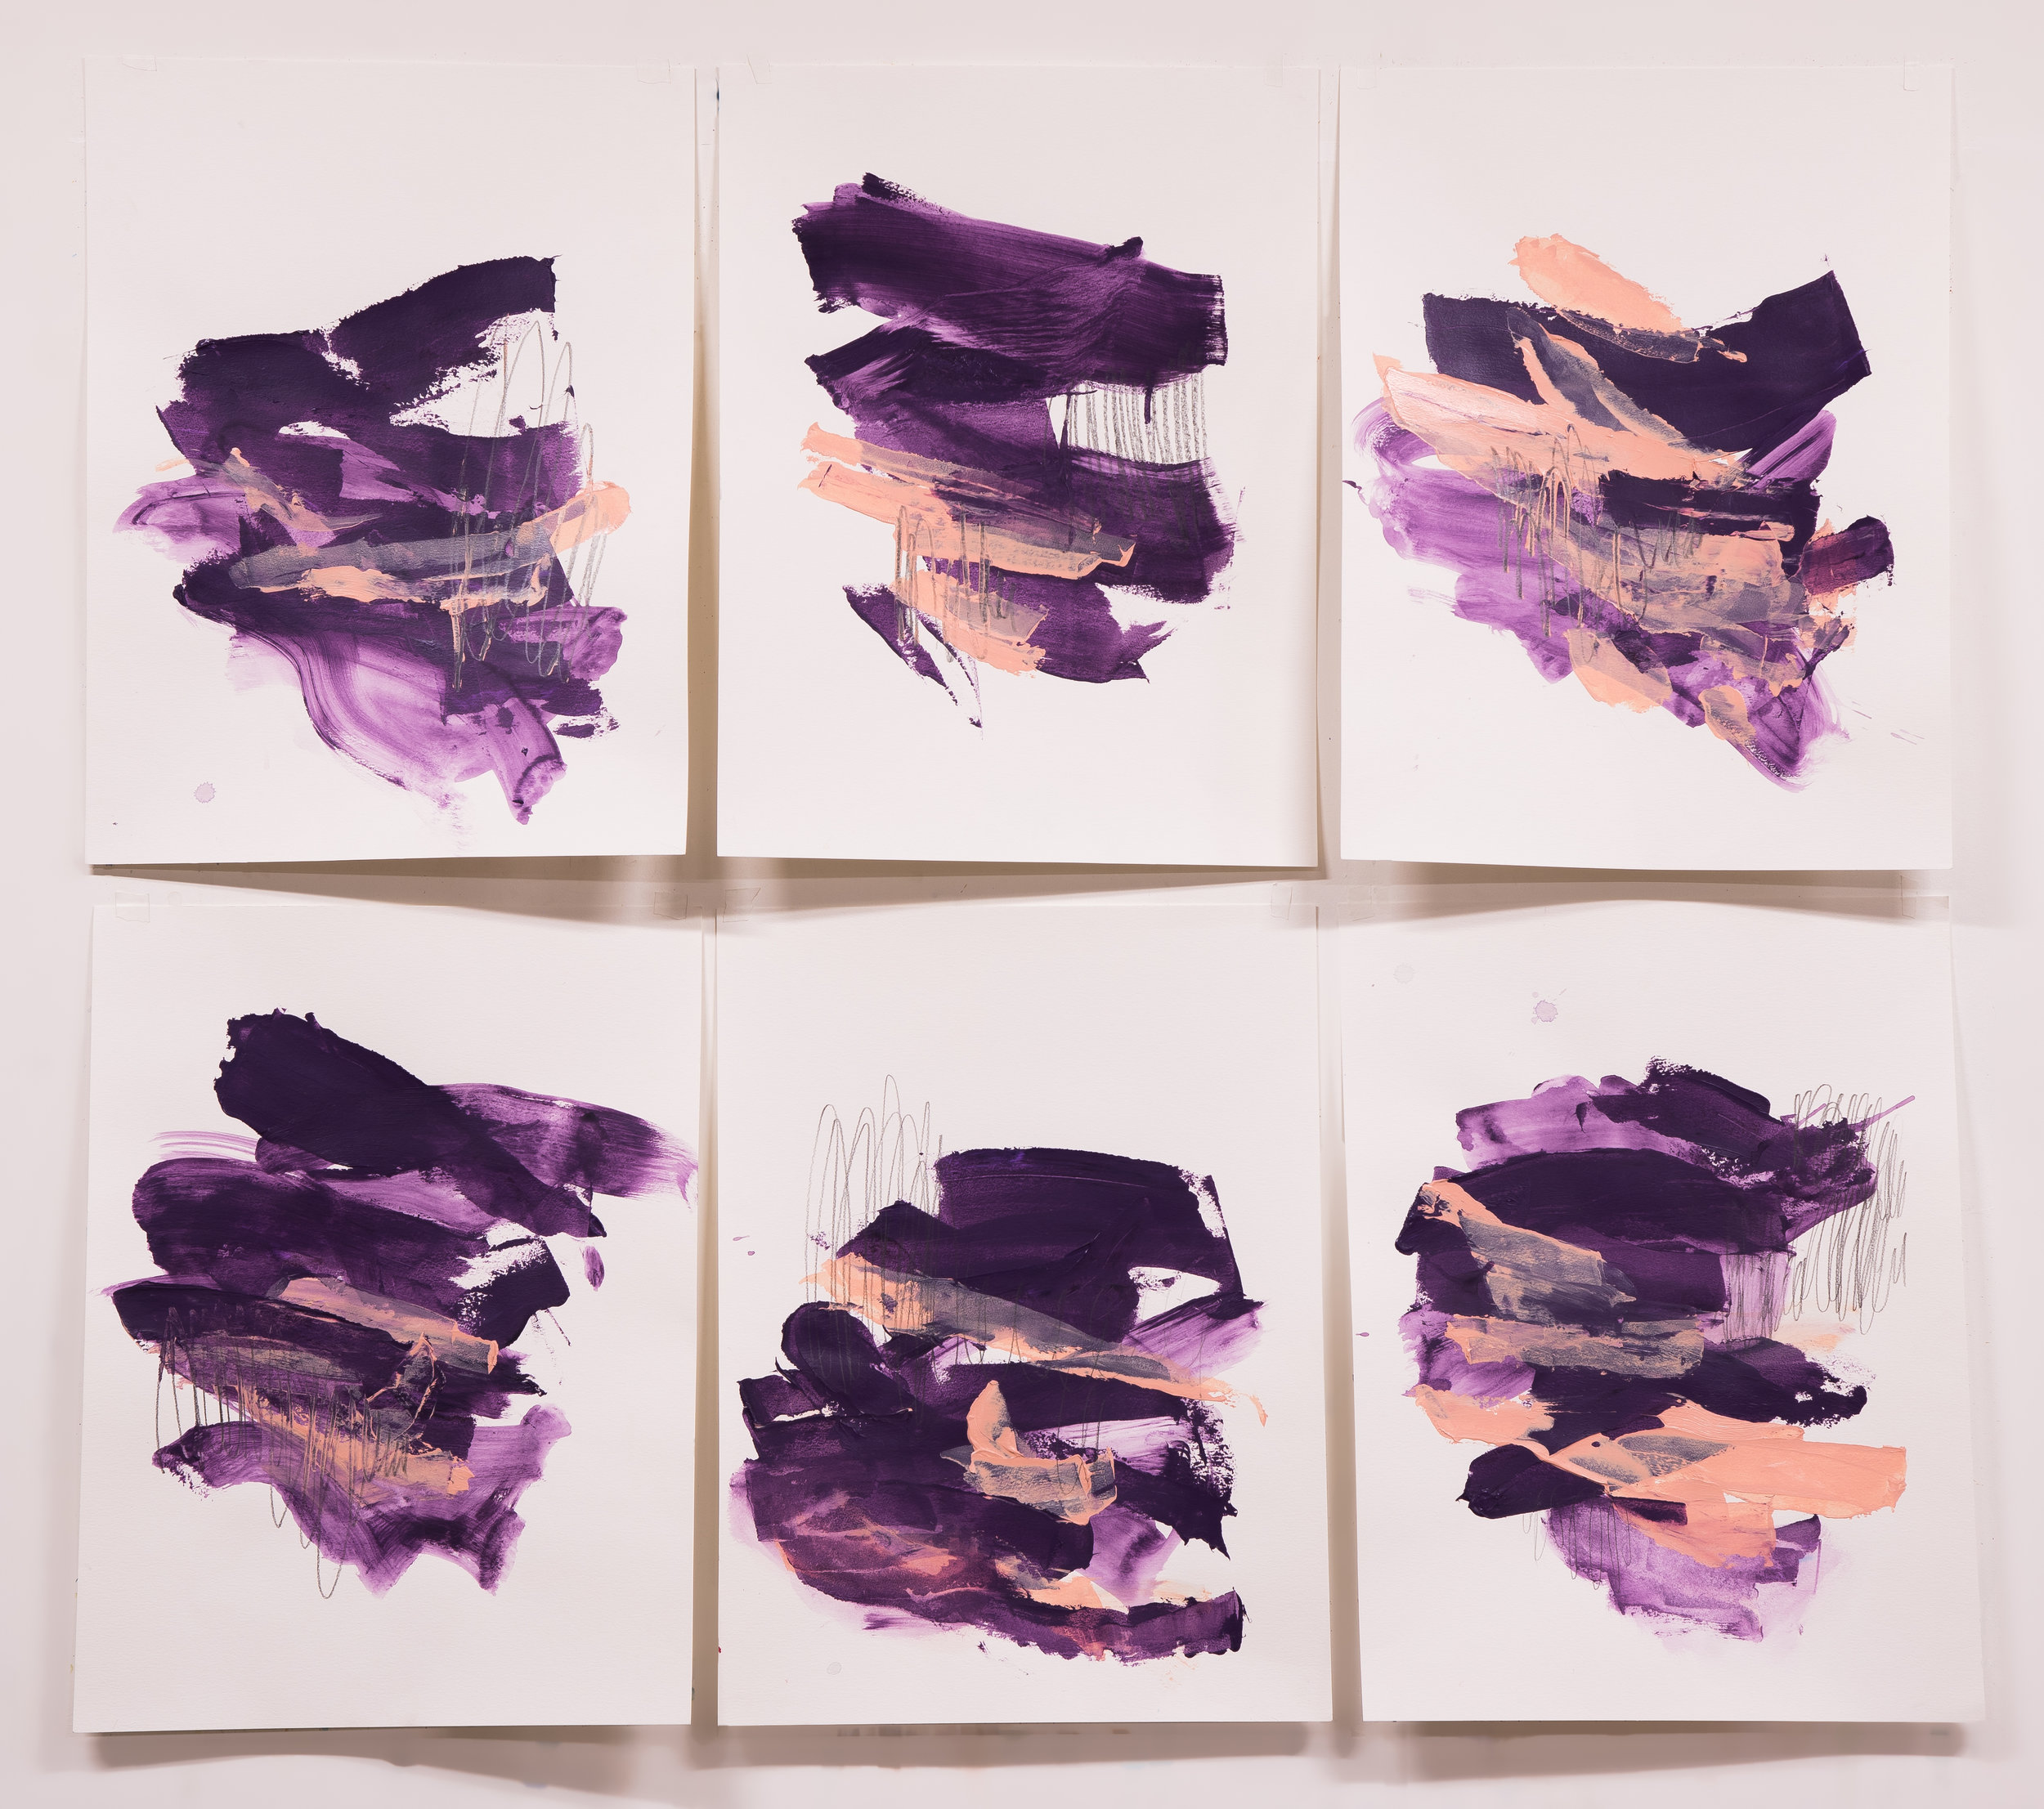 """Tongue Twister #1-6 , 18""""x24"""" each, acrylic + graphite on paper, 2018, available"""